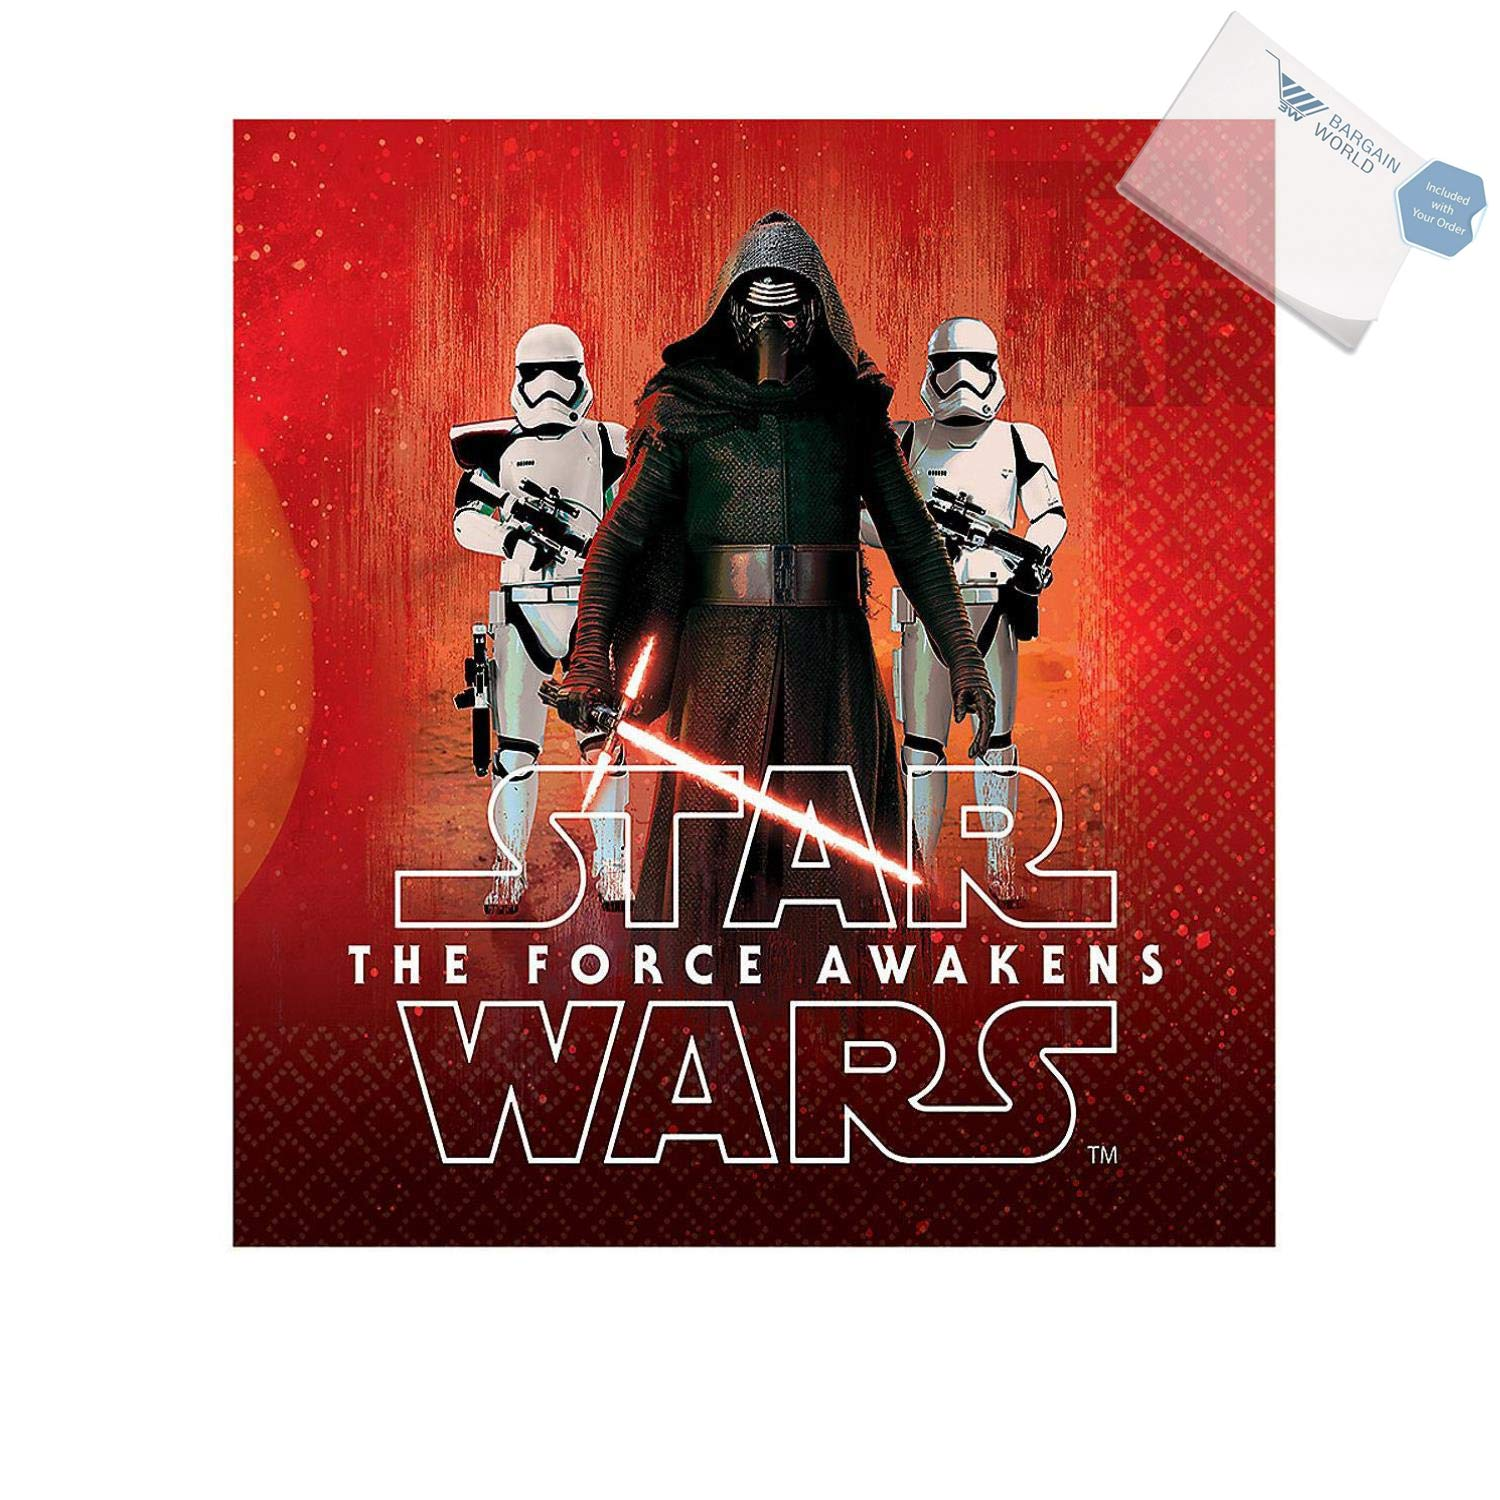 Bargain World Star Wars Episode VII: The Force Awakens Luncheon Napkins (With Sticky Notes) by Bargain World (Image #2)